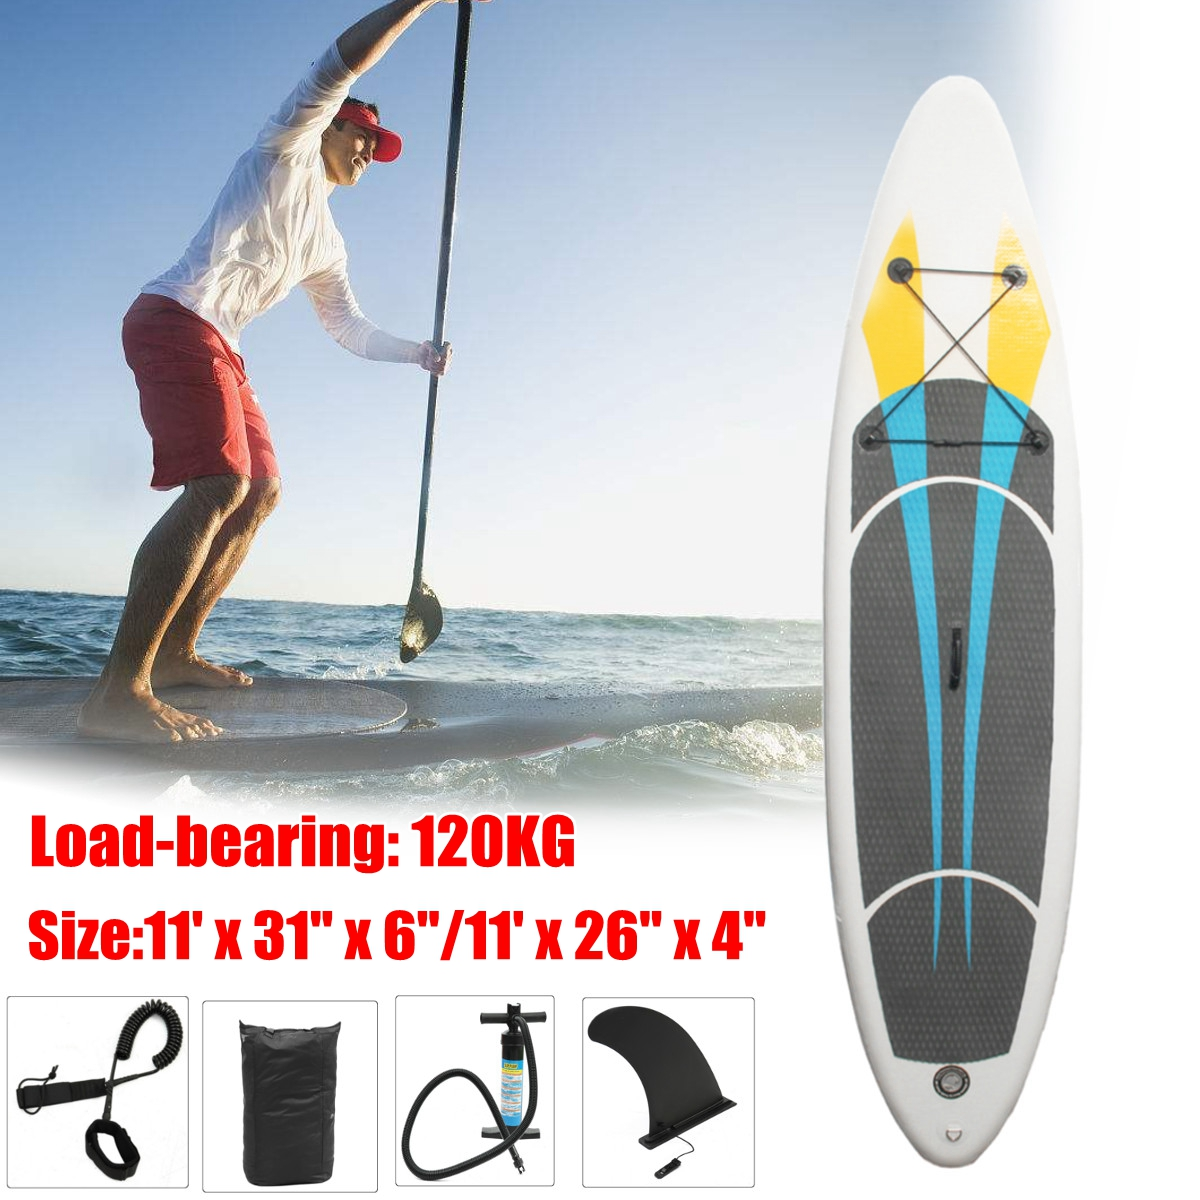 330x76x15CM 10FT SUP Inflatable Surfing Board Kits Soft Surfboard Stand Up Paddle Board with 3 Fin